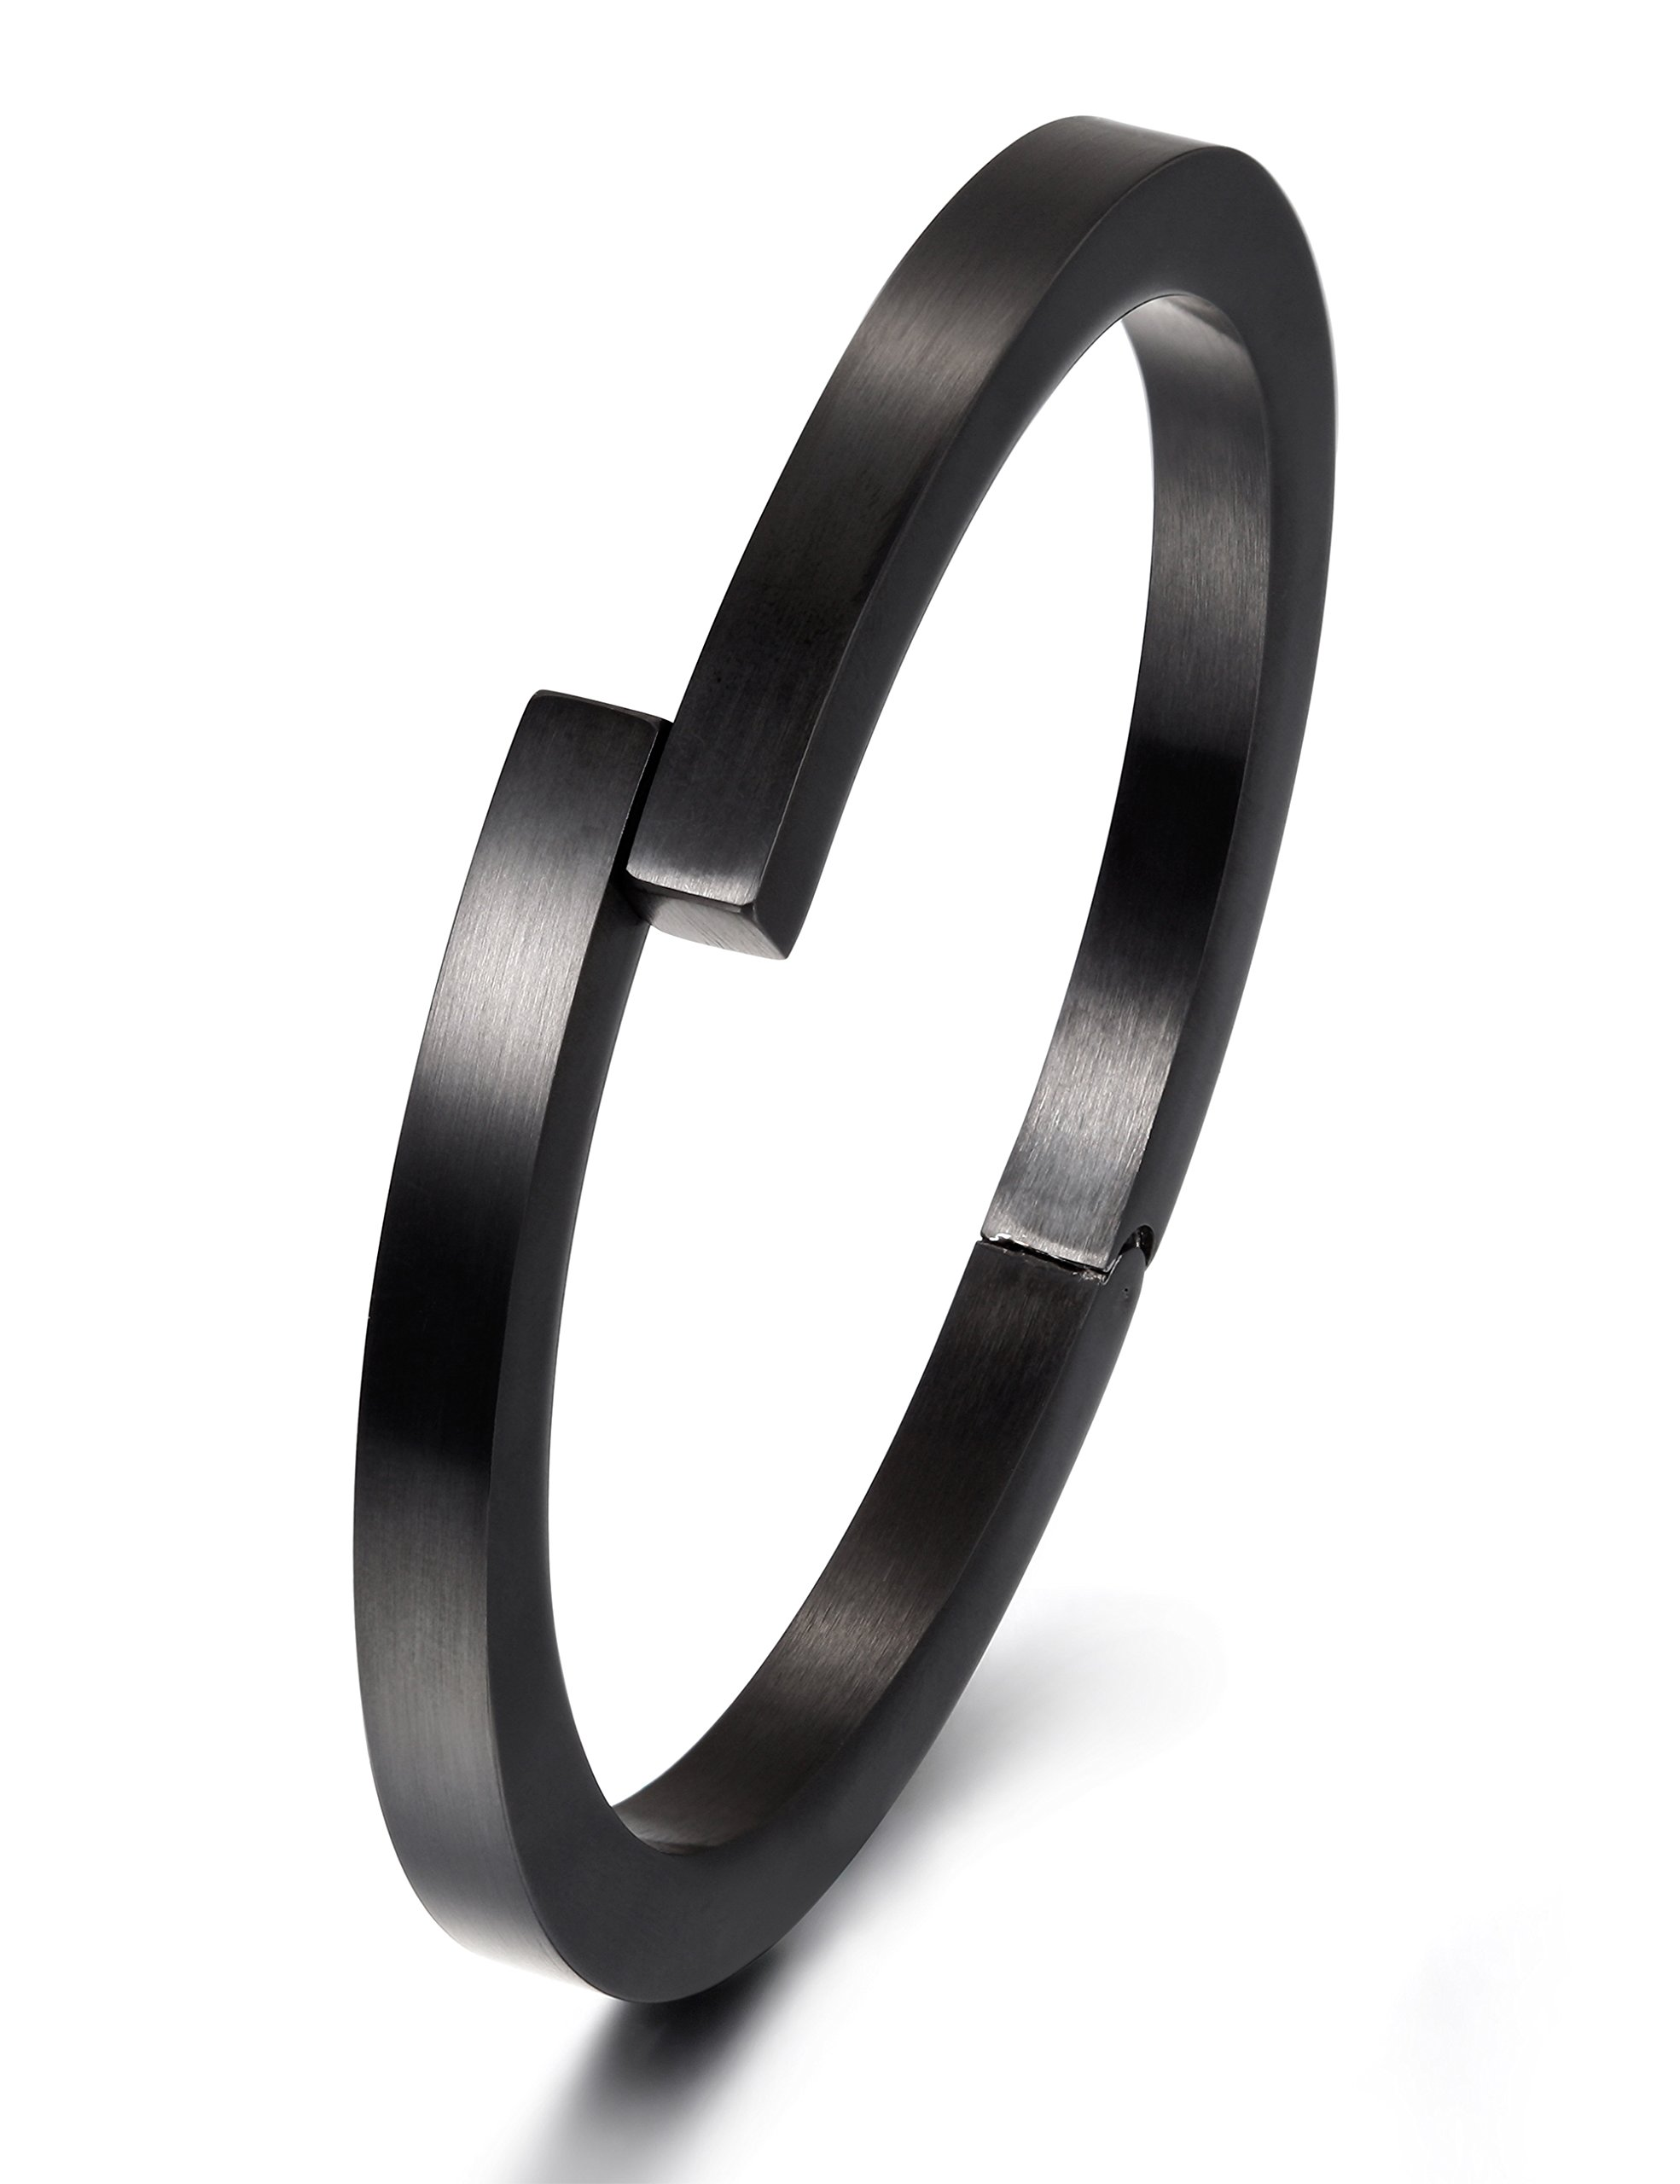 Wistic Black Bracelet with Stainless Steel Bangle Cuff and Magnetic-Clasp Plain Polished for Men Boy (Black)